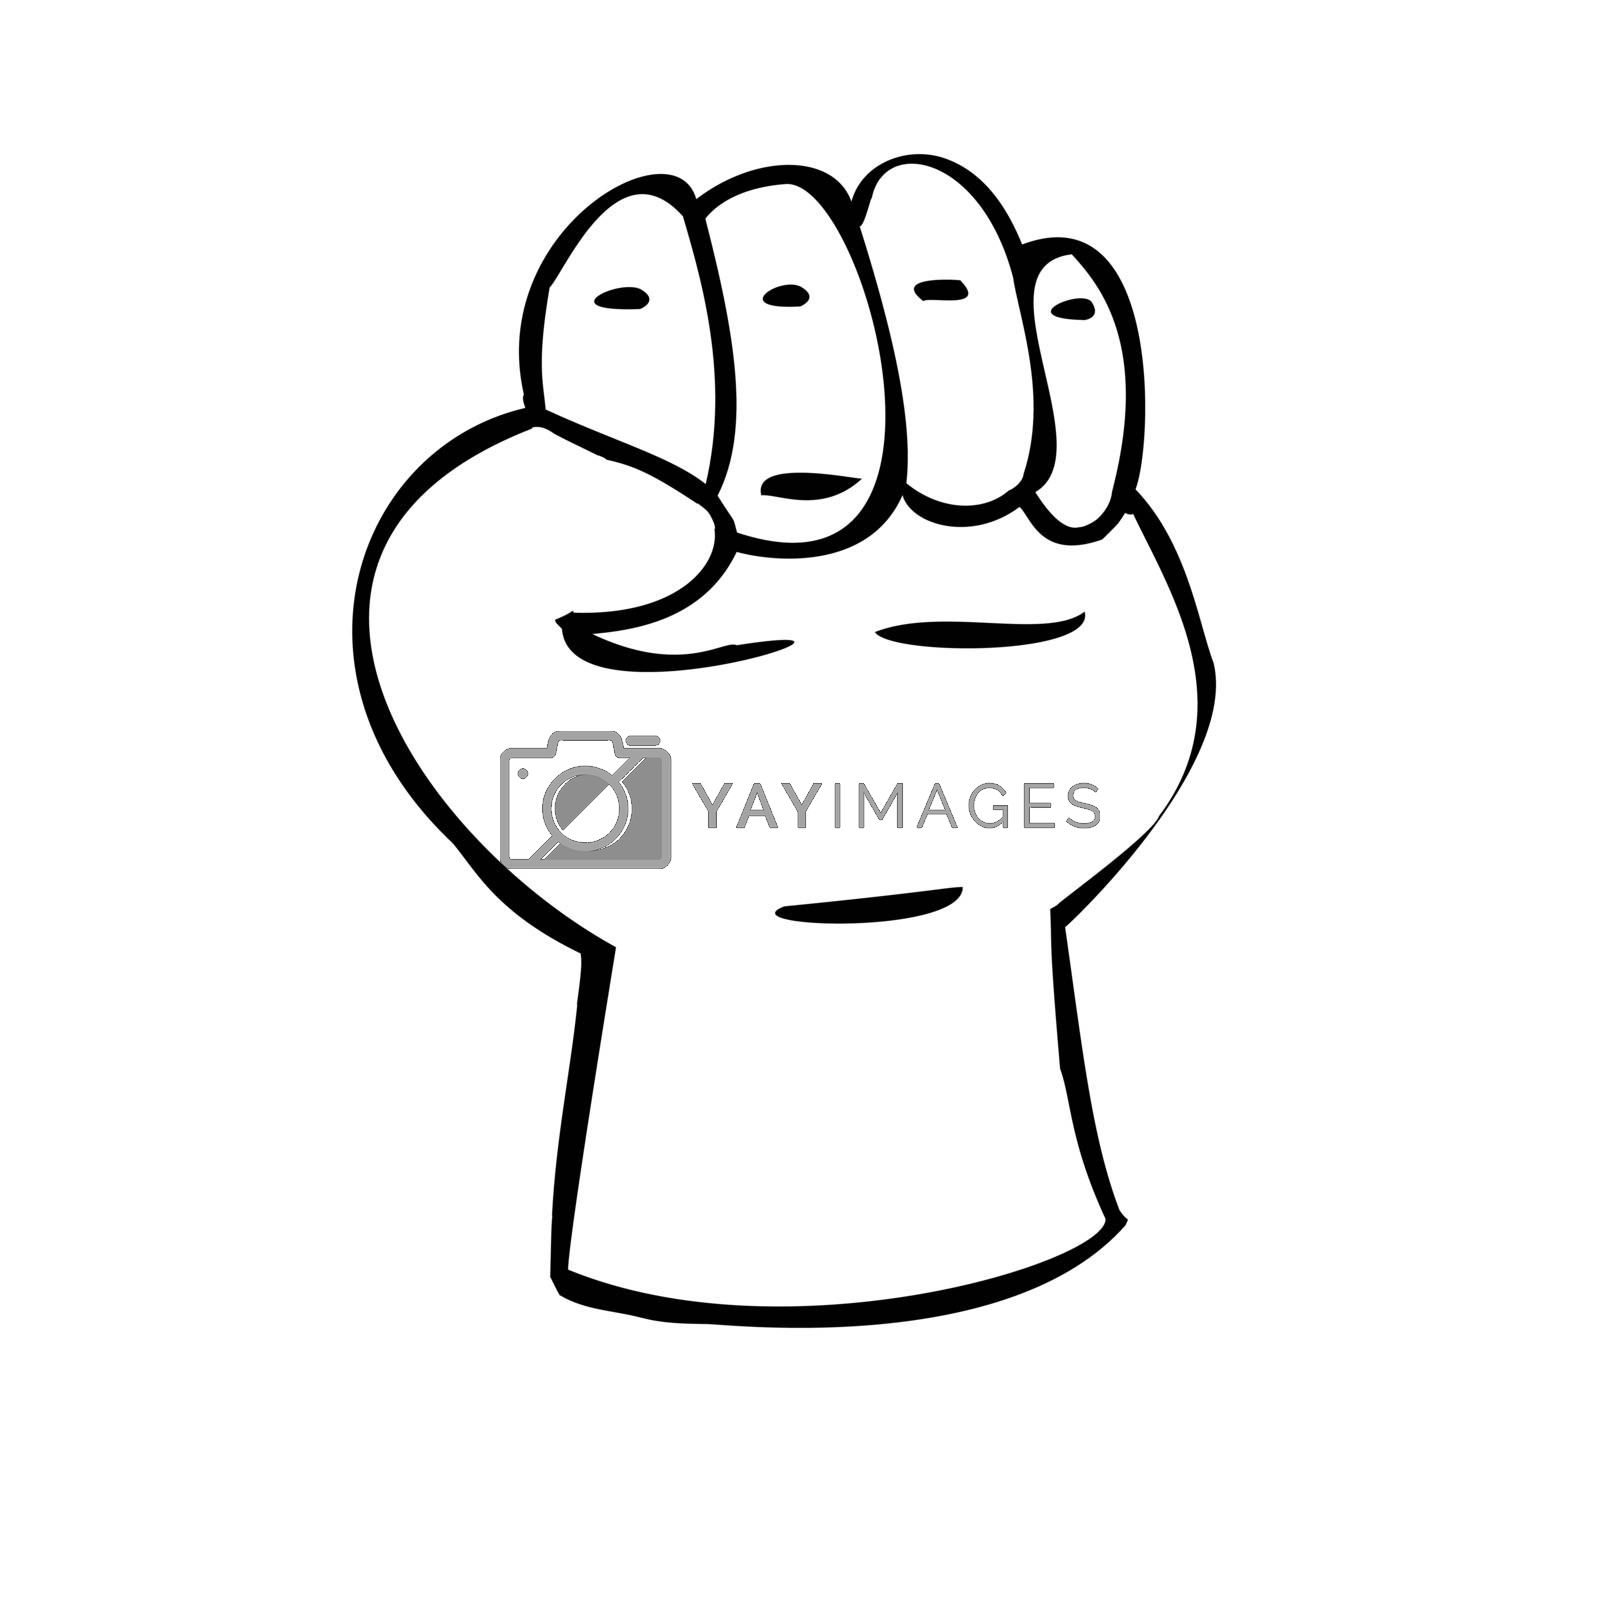 Hand clenched into a fist. Gesture of strength. Illustration in sketch style. Hand drawn vector illustrations